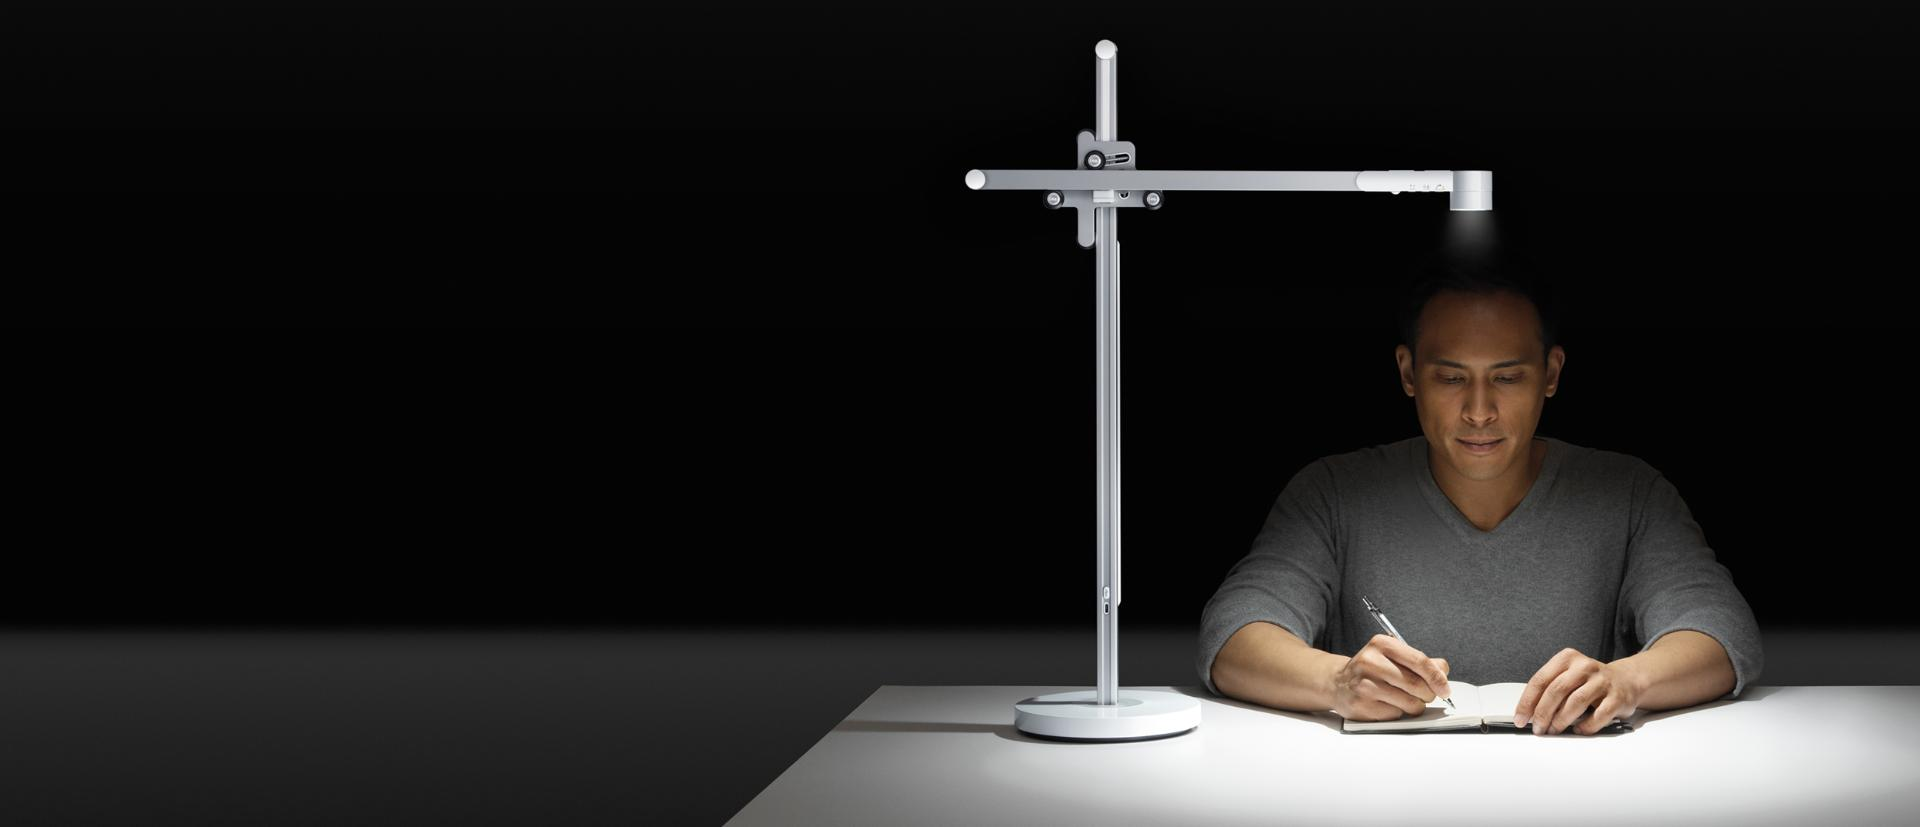 Man working under the Dyson Lightcycle task light